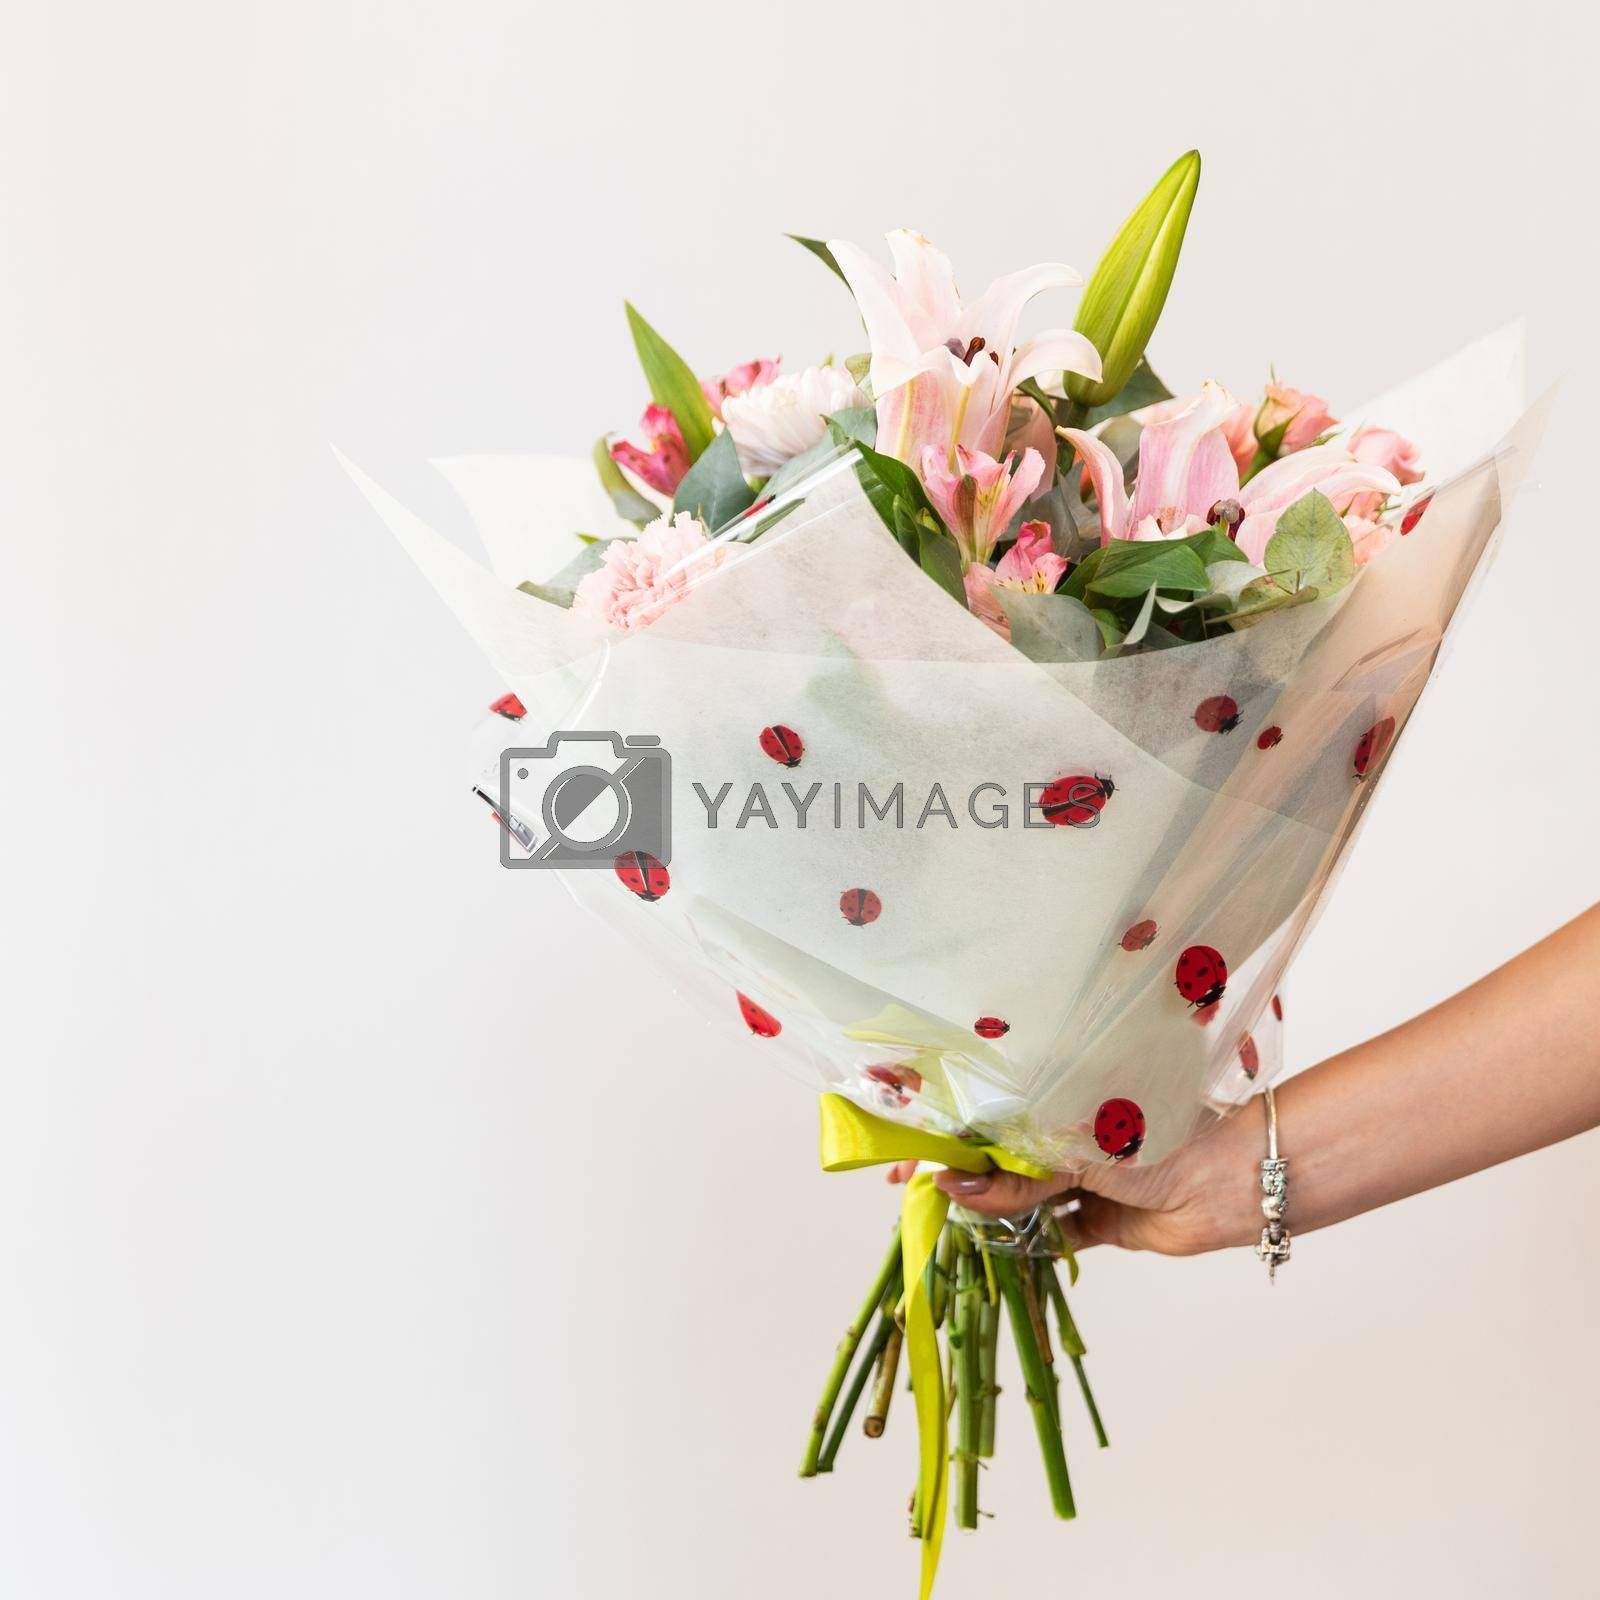 Woman holding colorful flower bouquet with white background